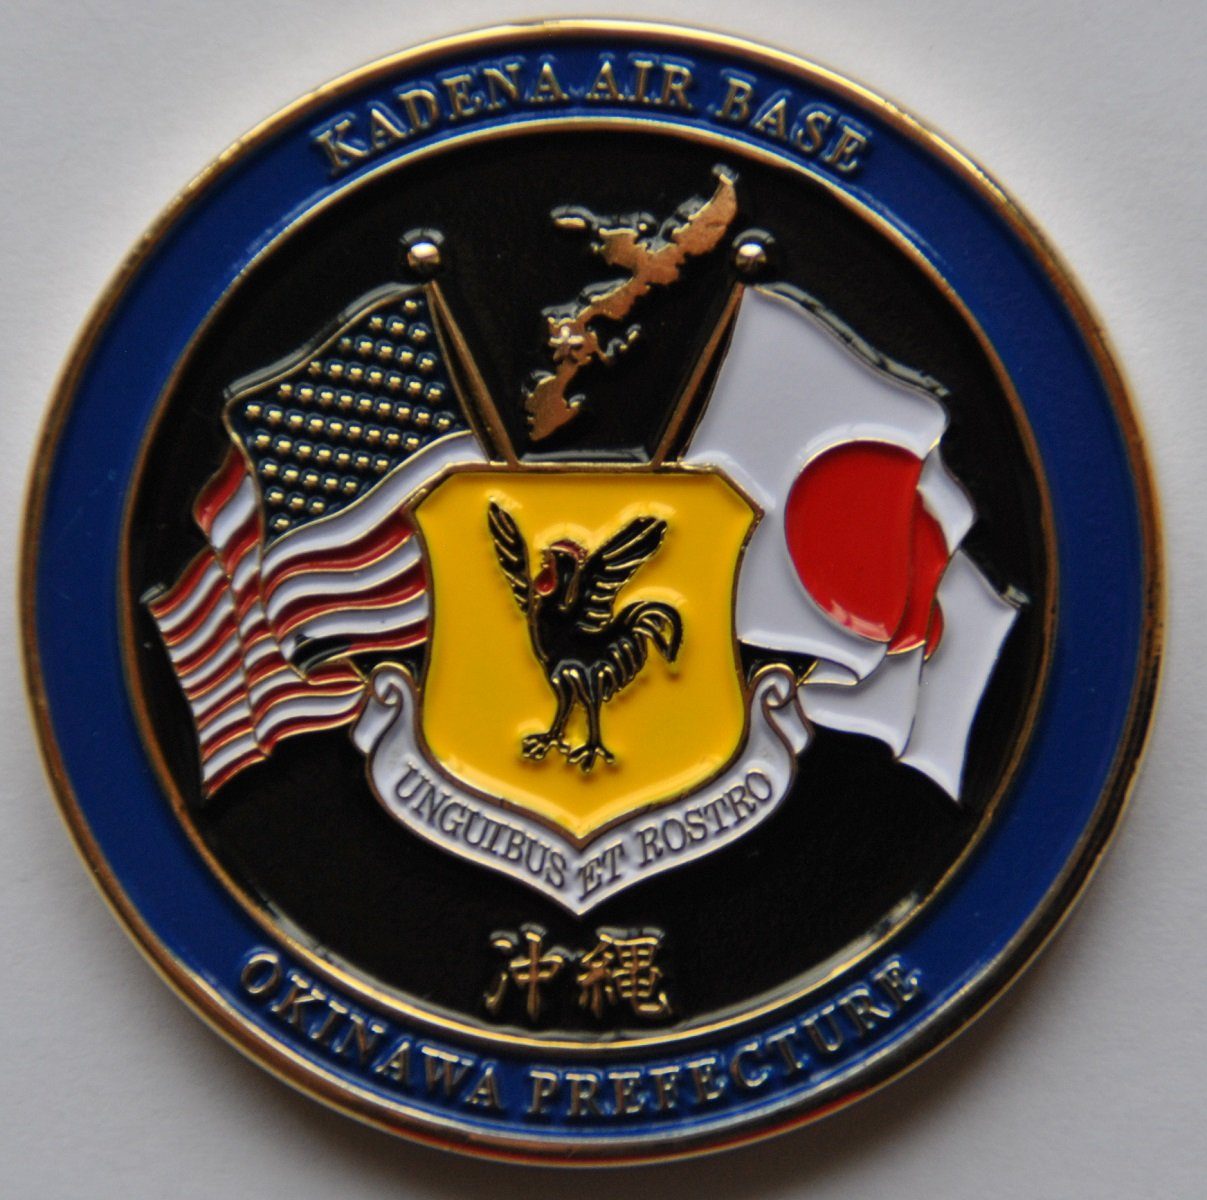 Kadena Air Base Challenge Coin by Challenge Coin (Image #2)